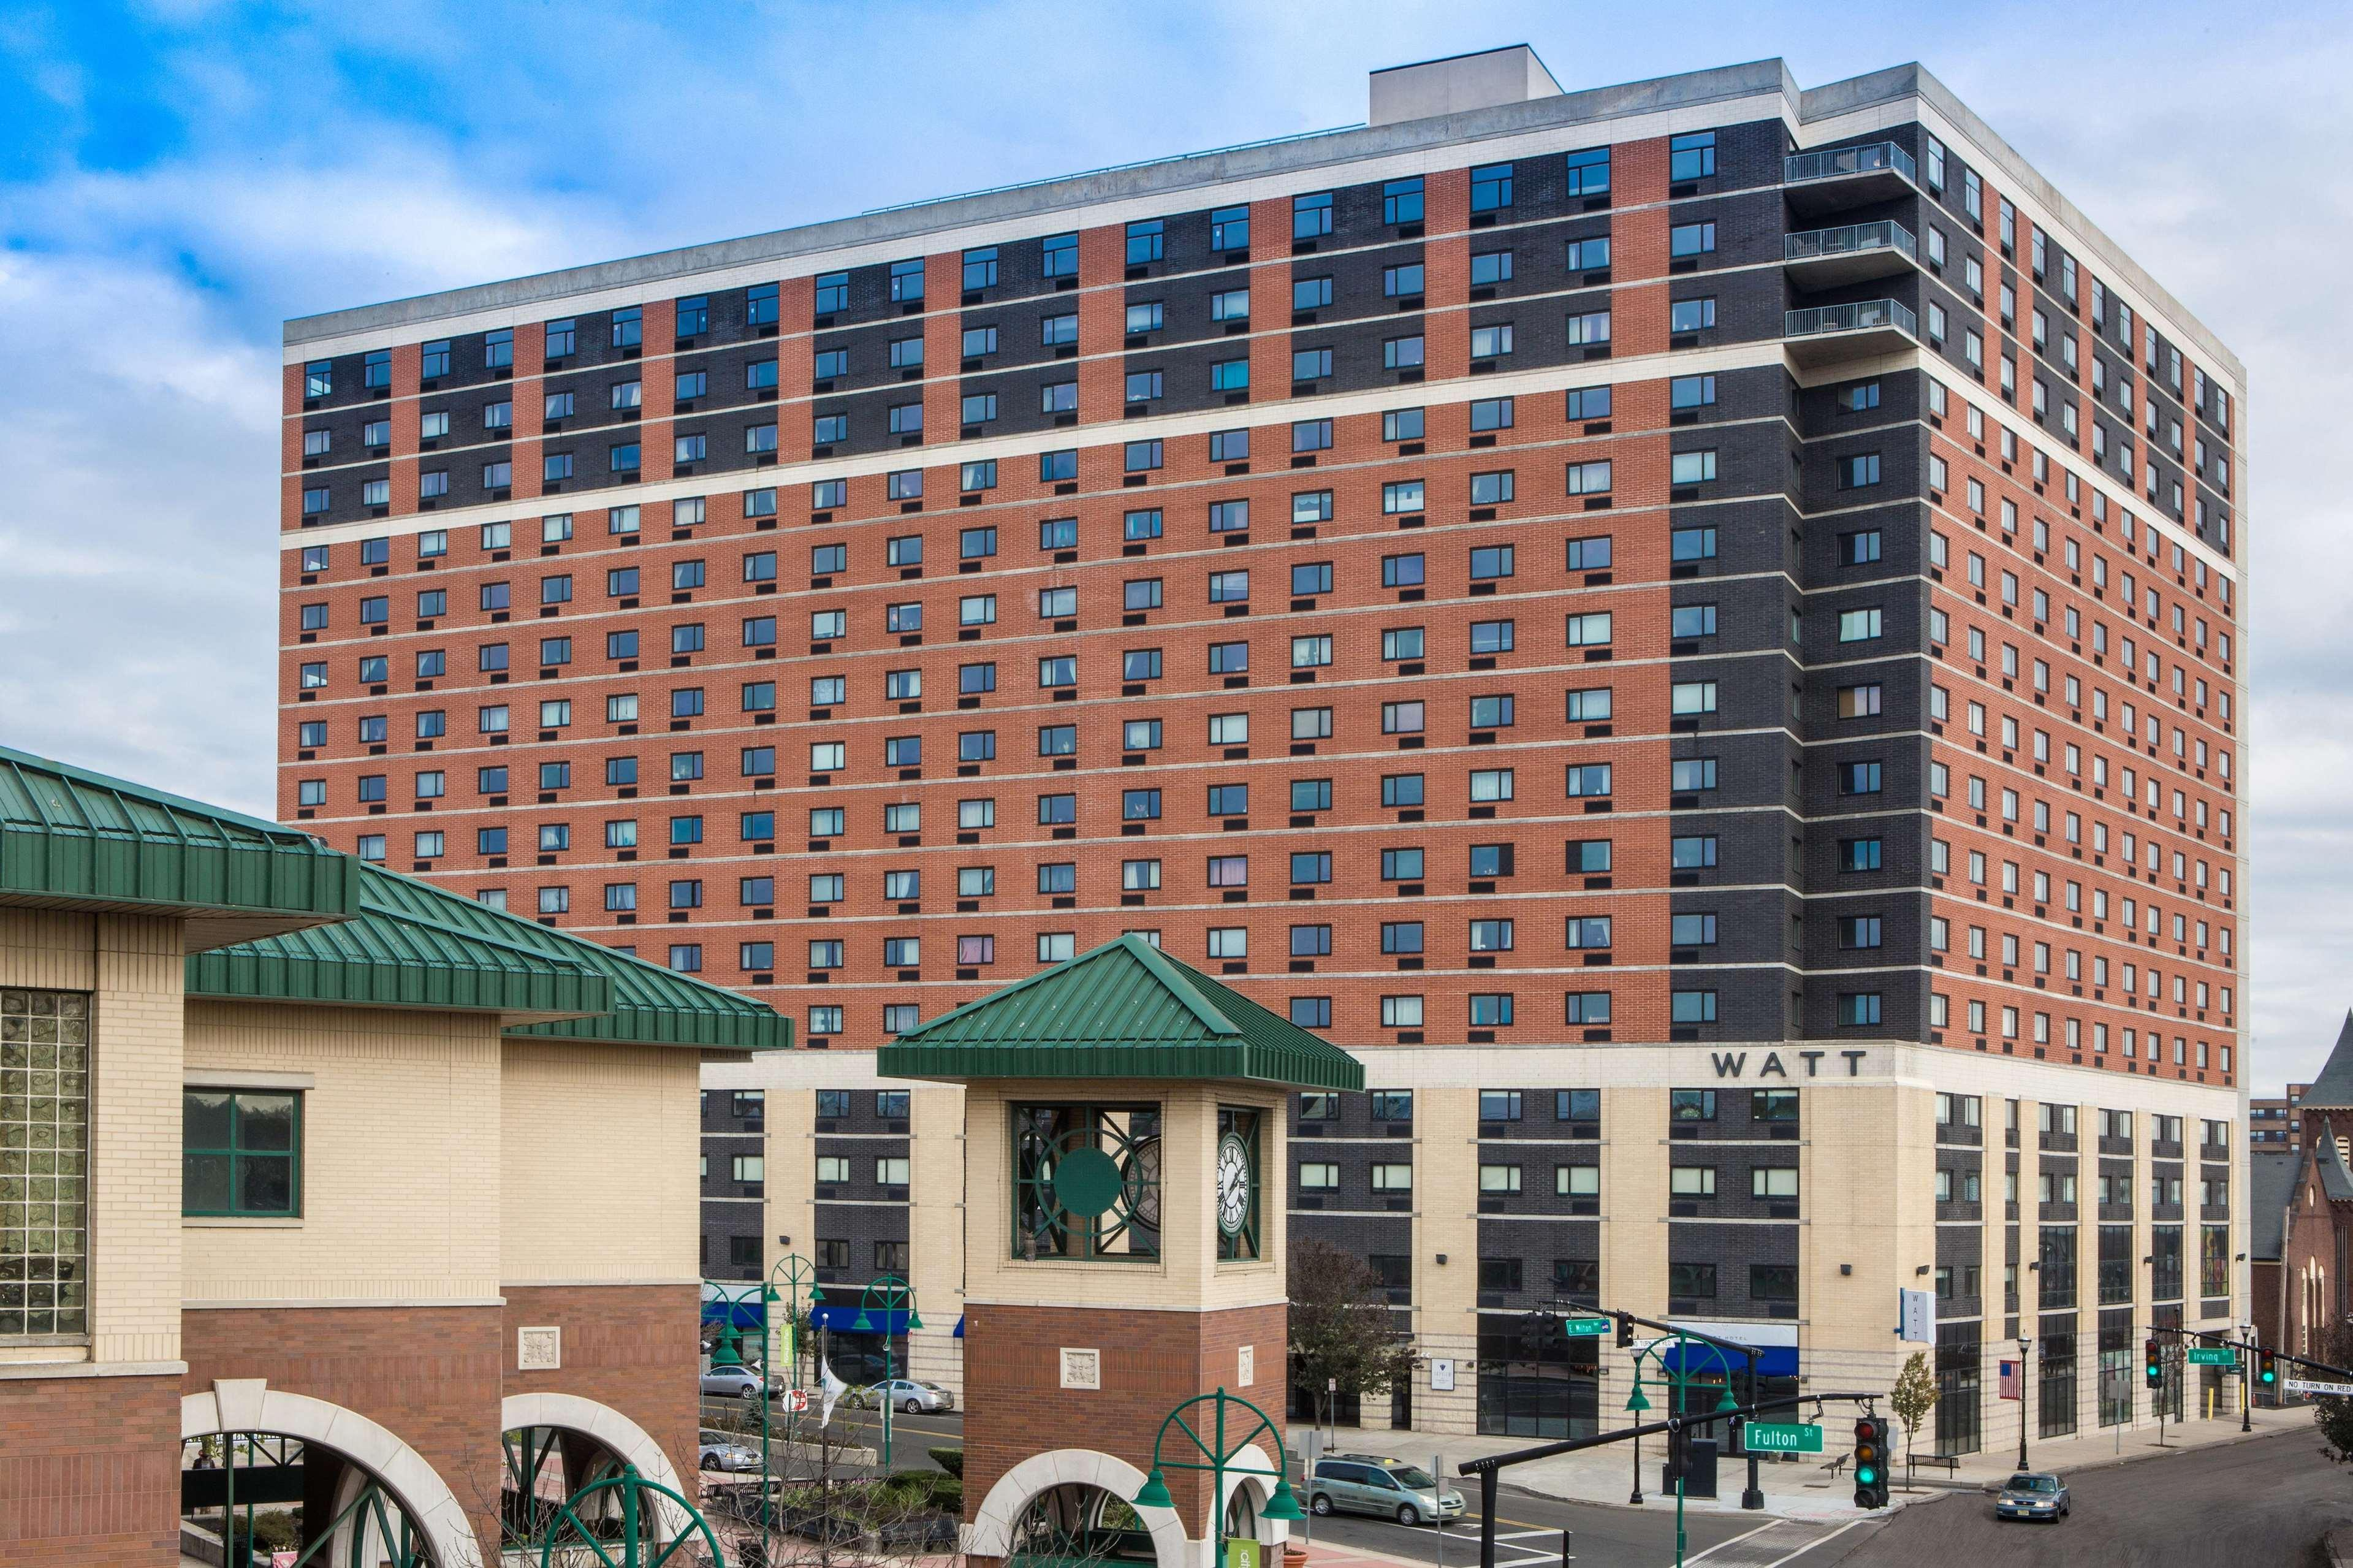 Watt Hotel Rahway, Tapestry Collection by Hilton, Union